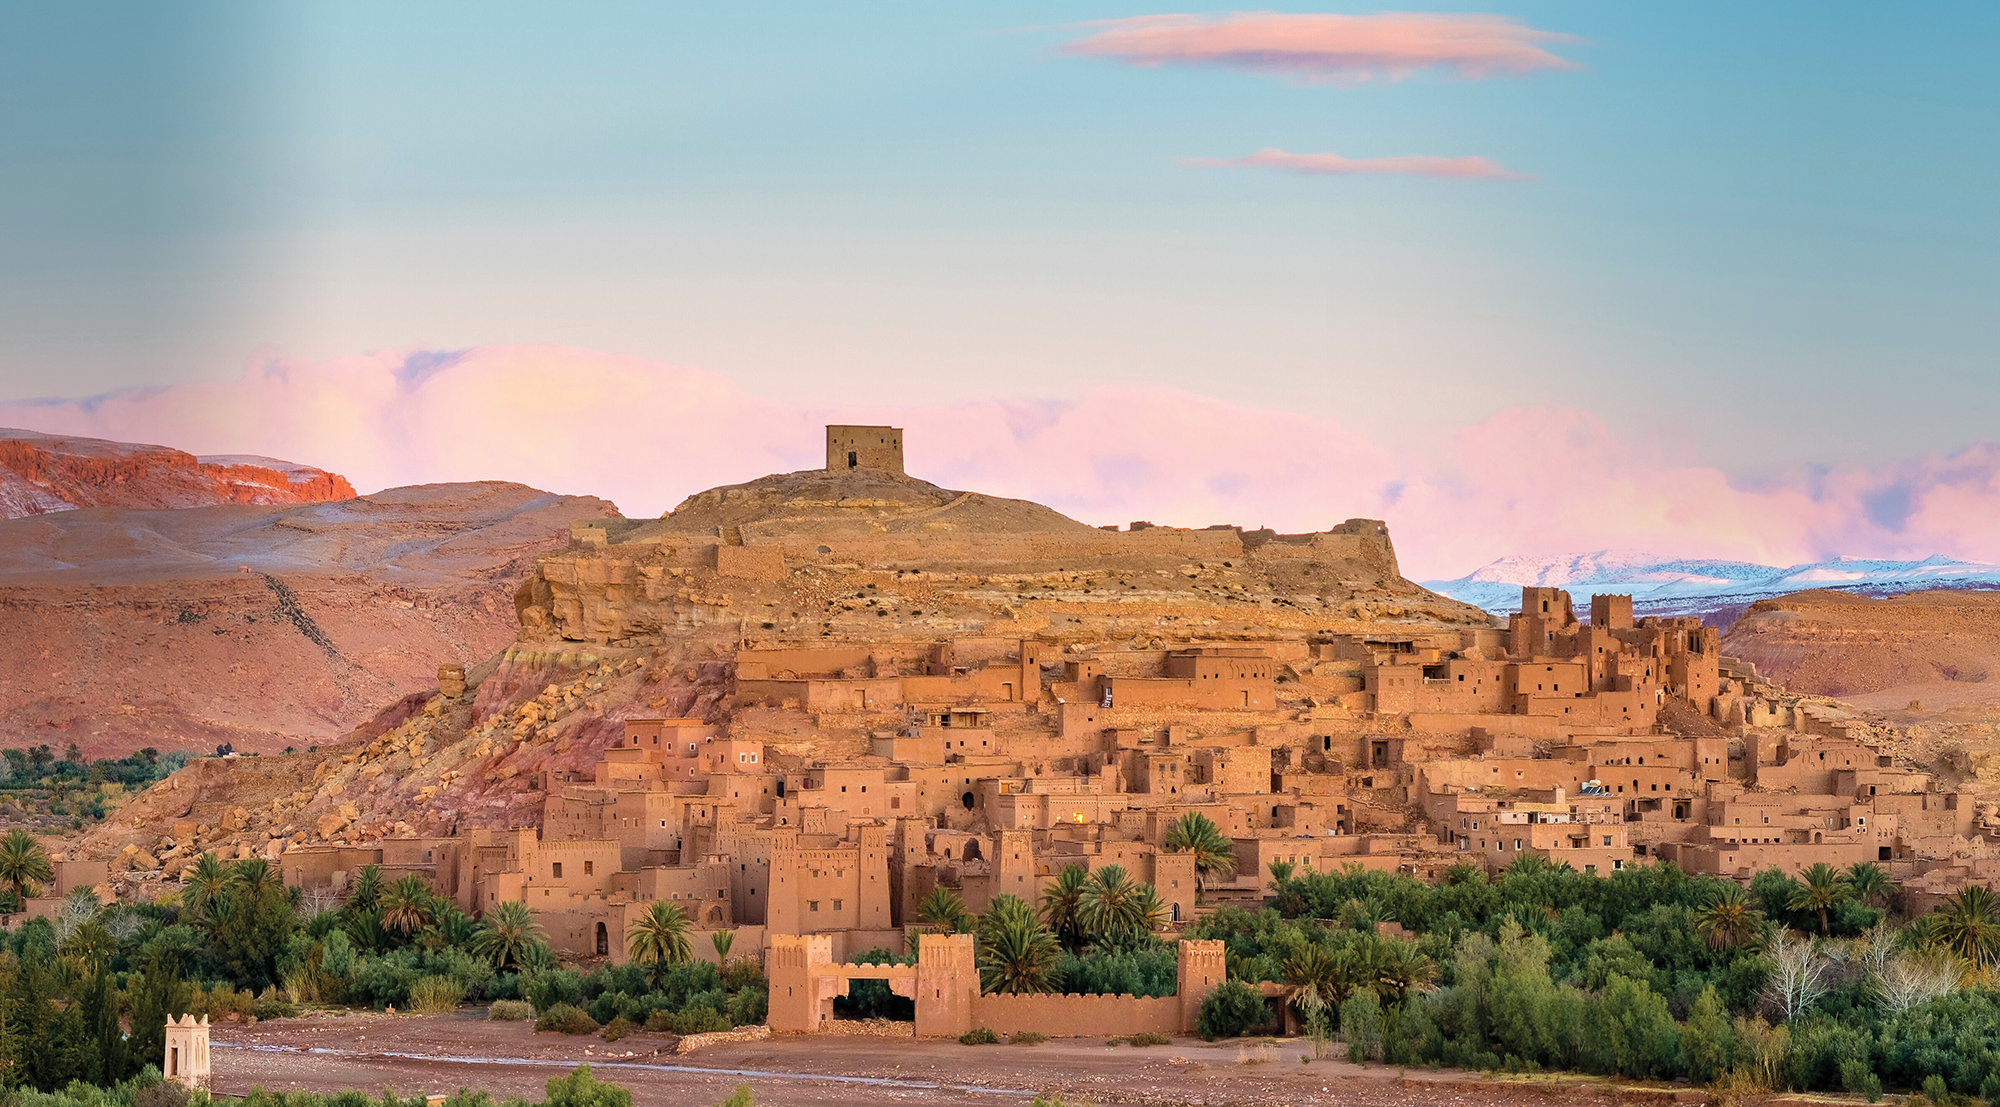 VISIT MOROCCO'S IMPERIAL CITIES